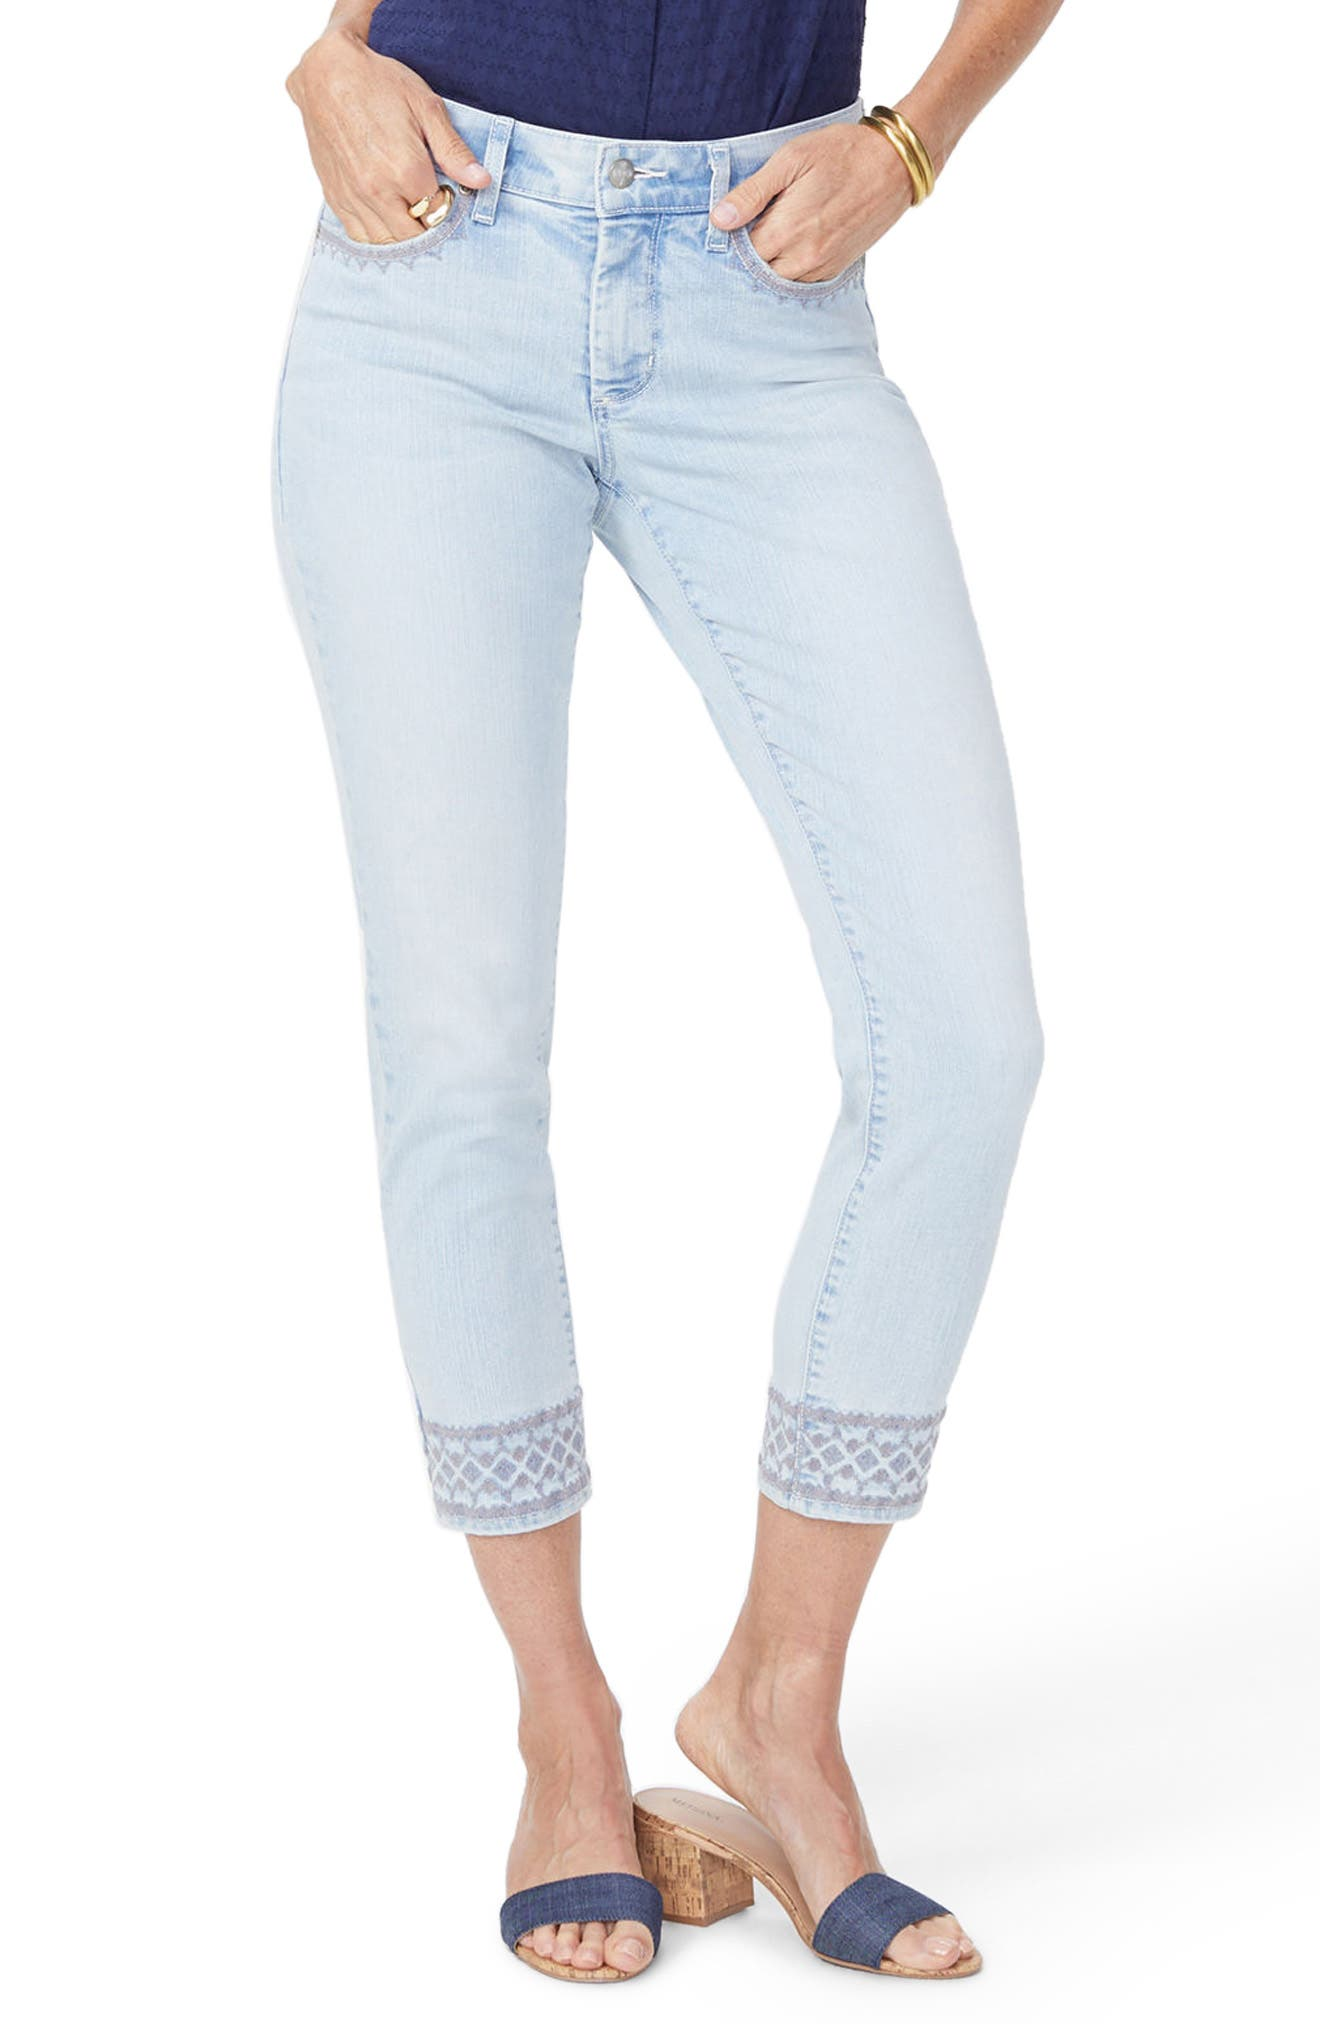 Ami Embroidered Border Ankle Skinny Jeans,                         Main,                         color,